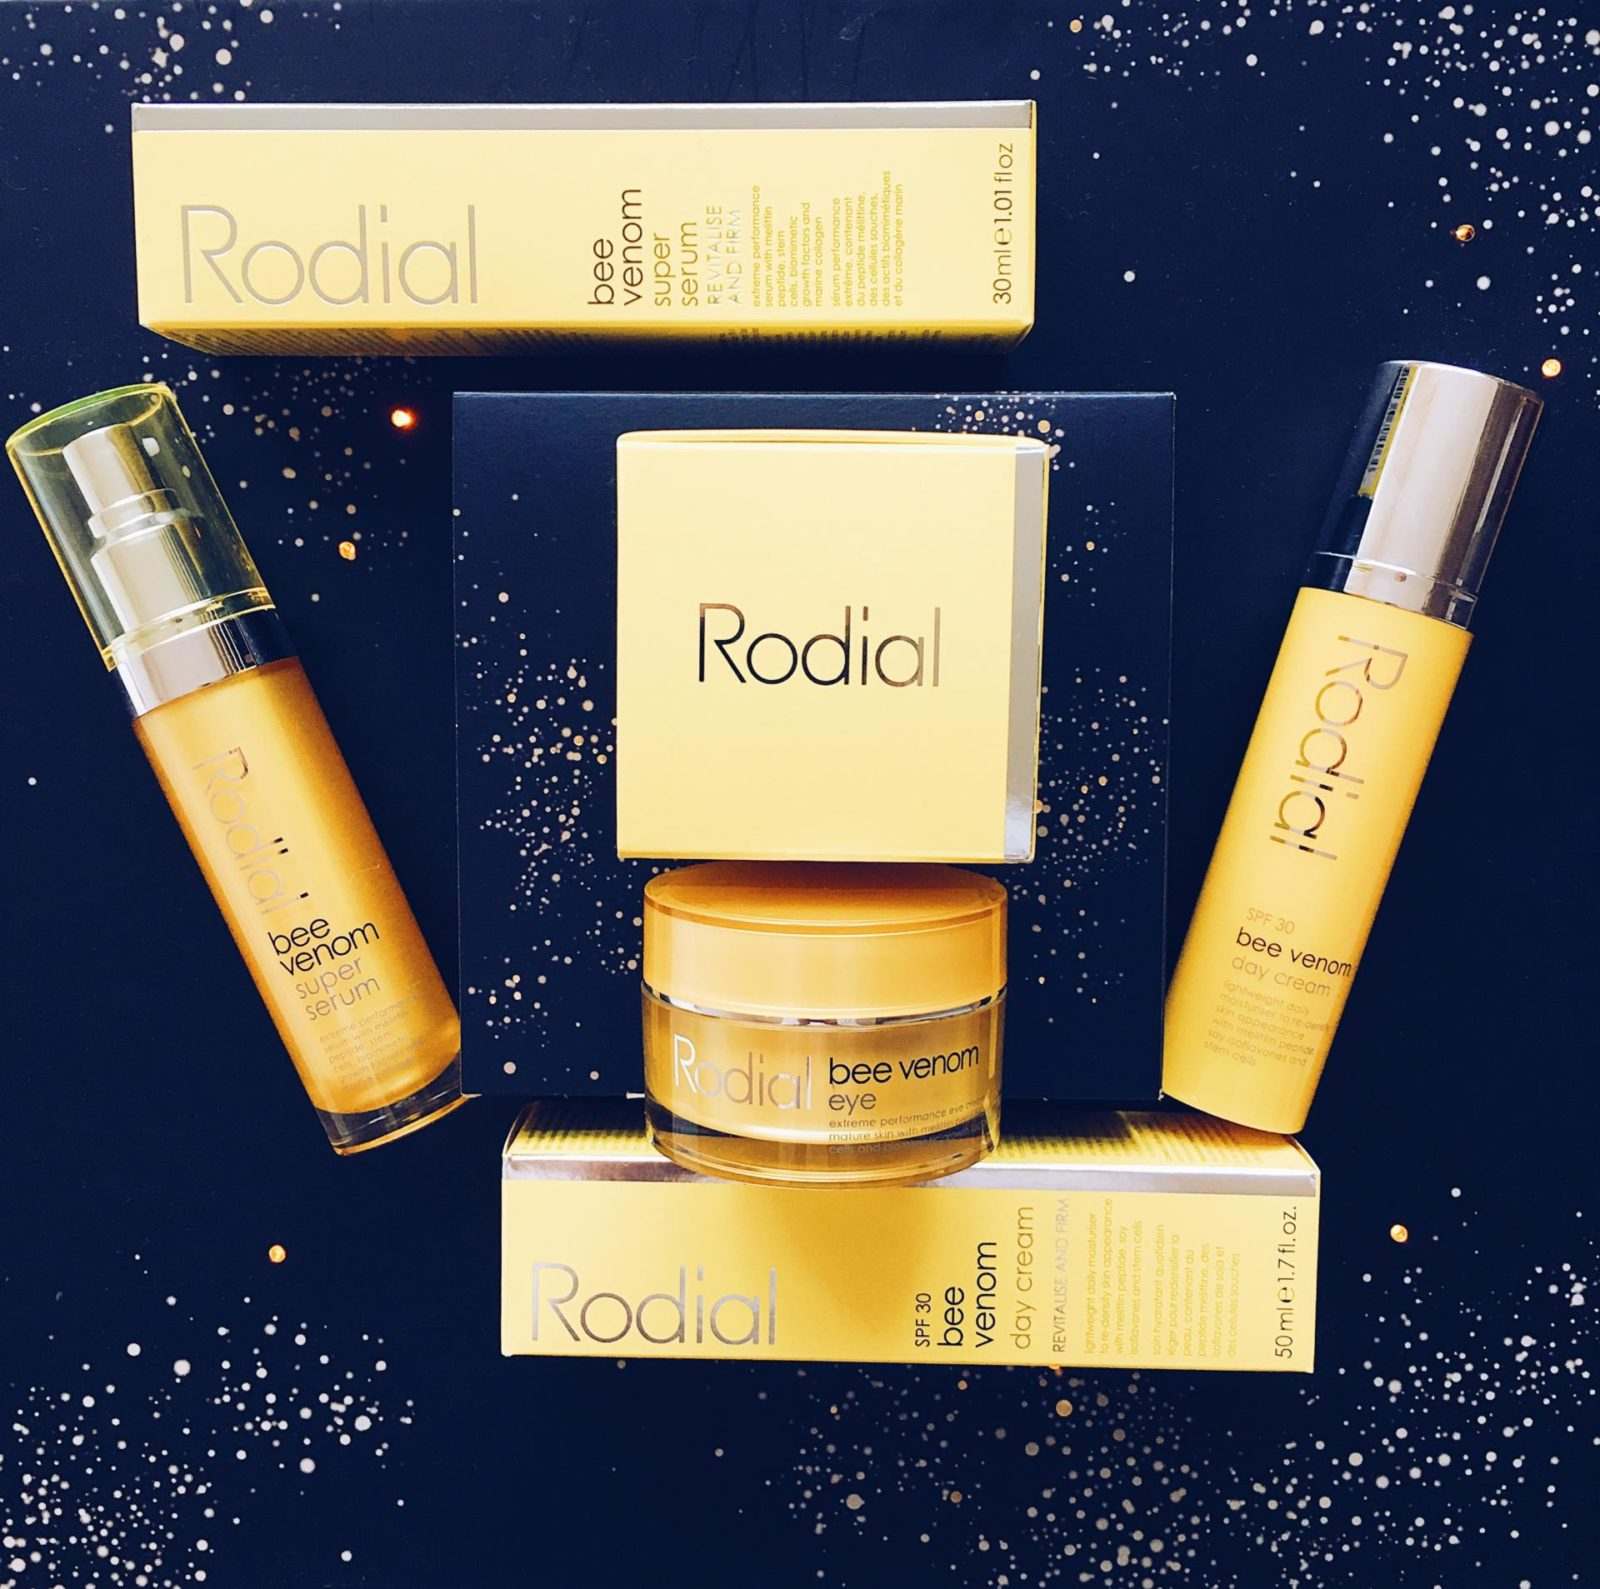 New Skin care routine with Rodial Skin Care